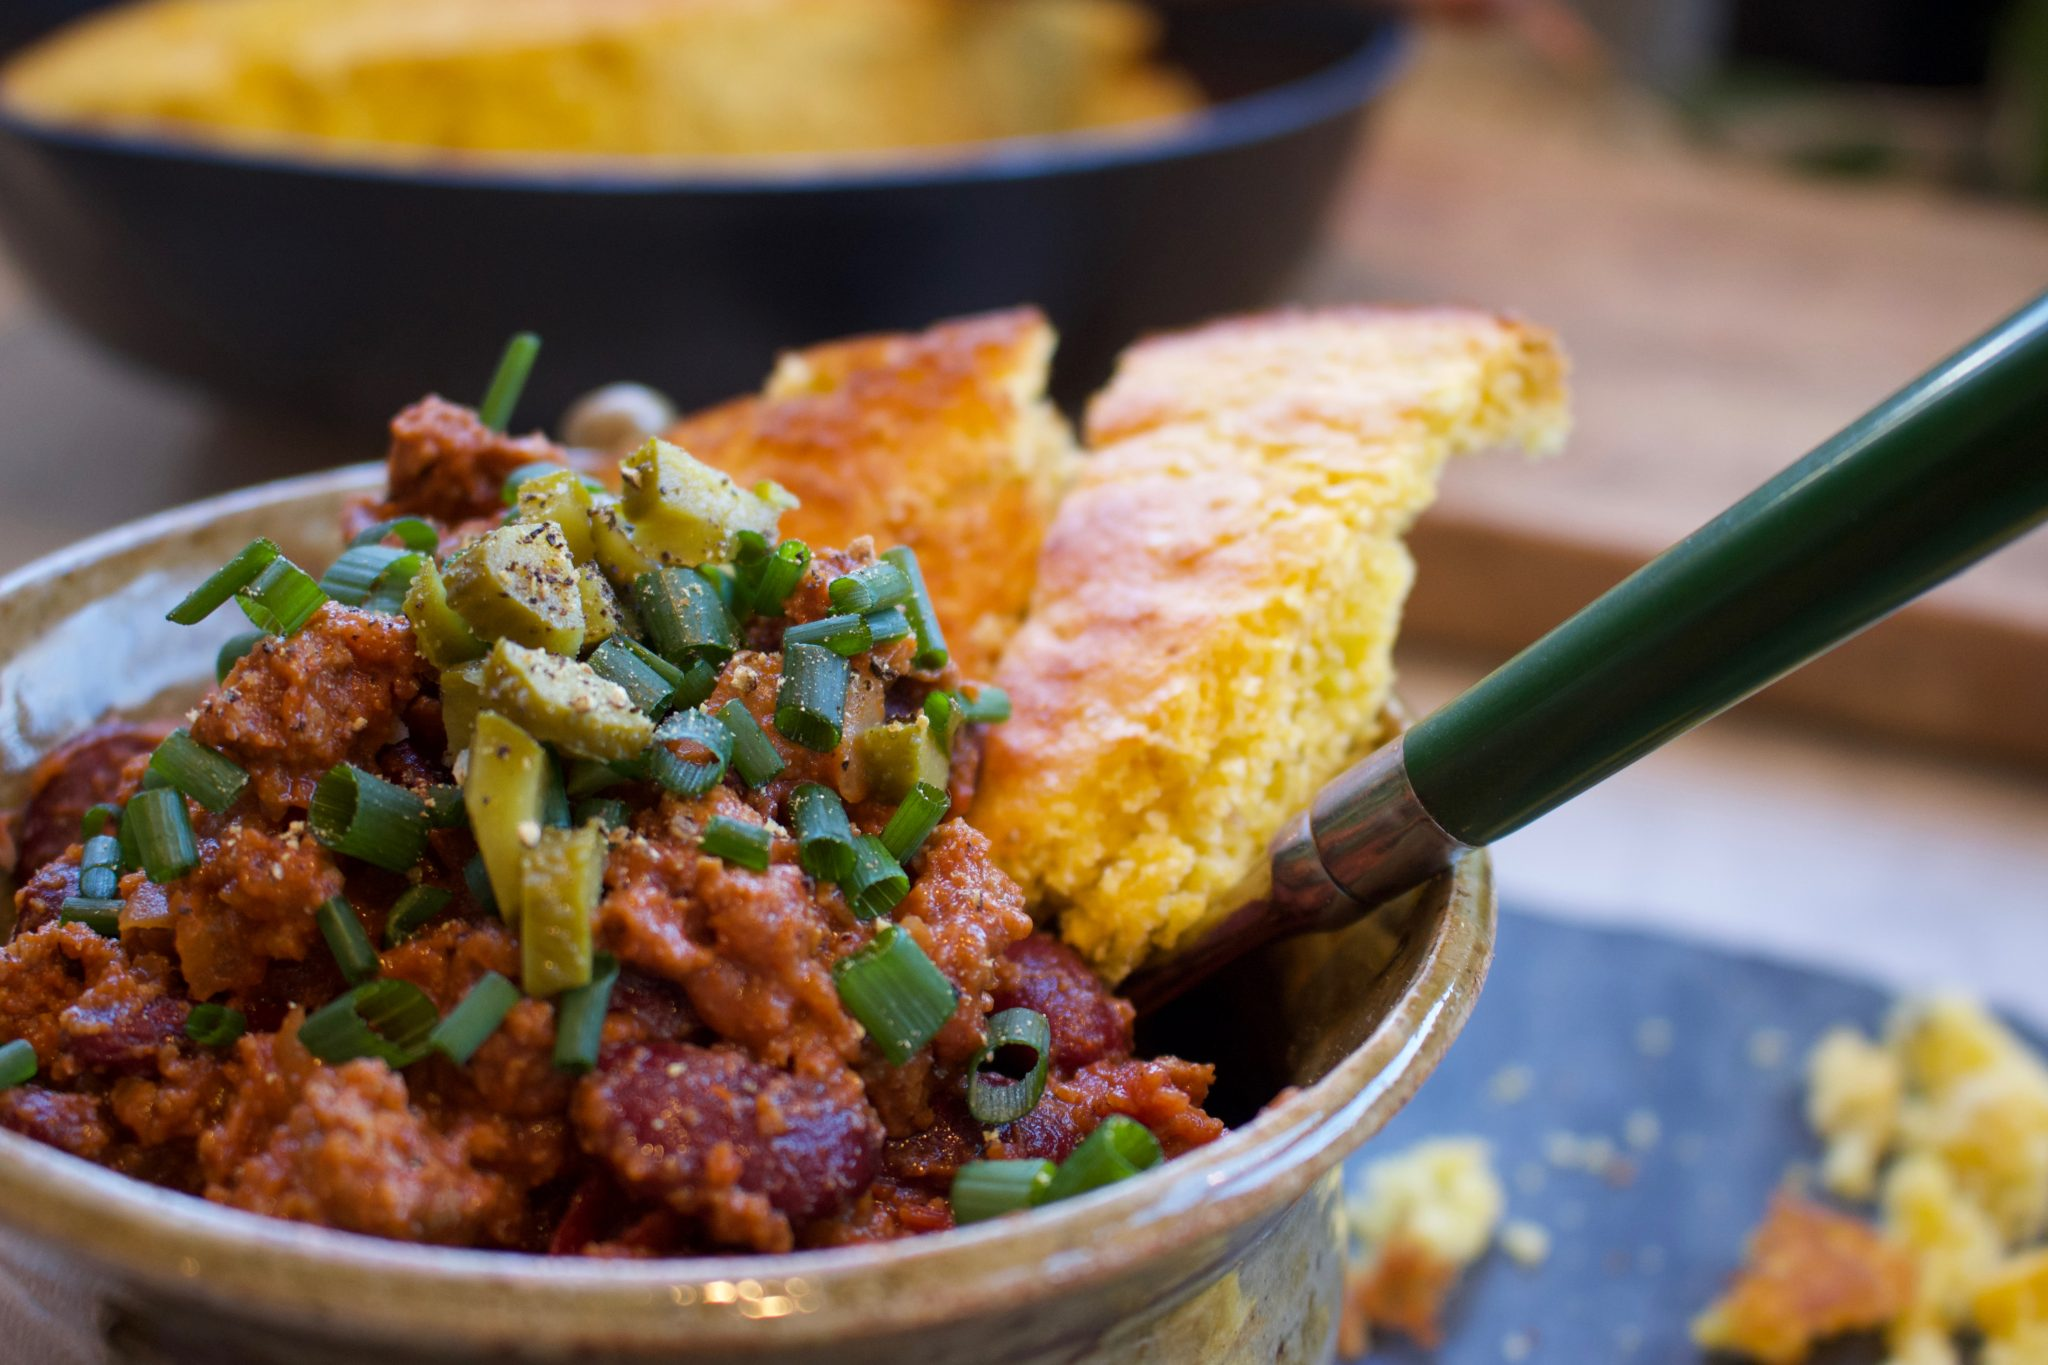 quick and easy to prepare Chili, beans, cornbread